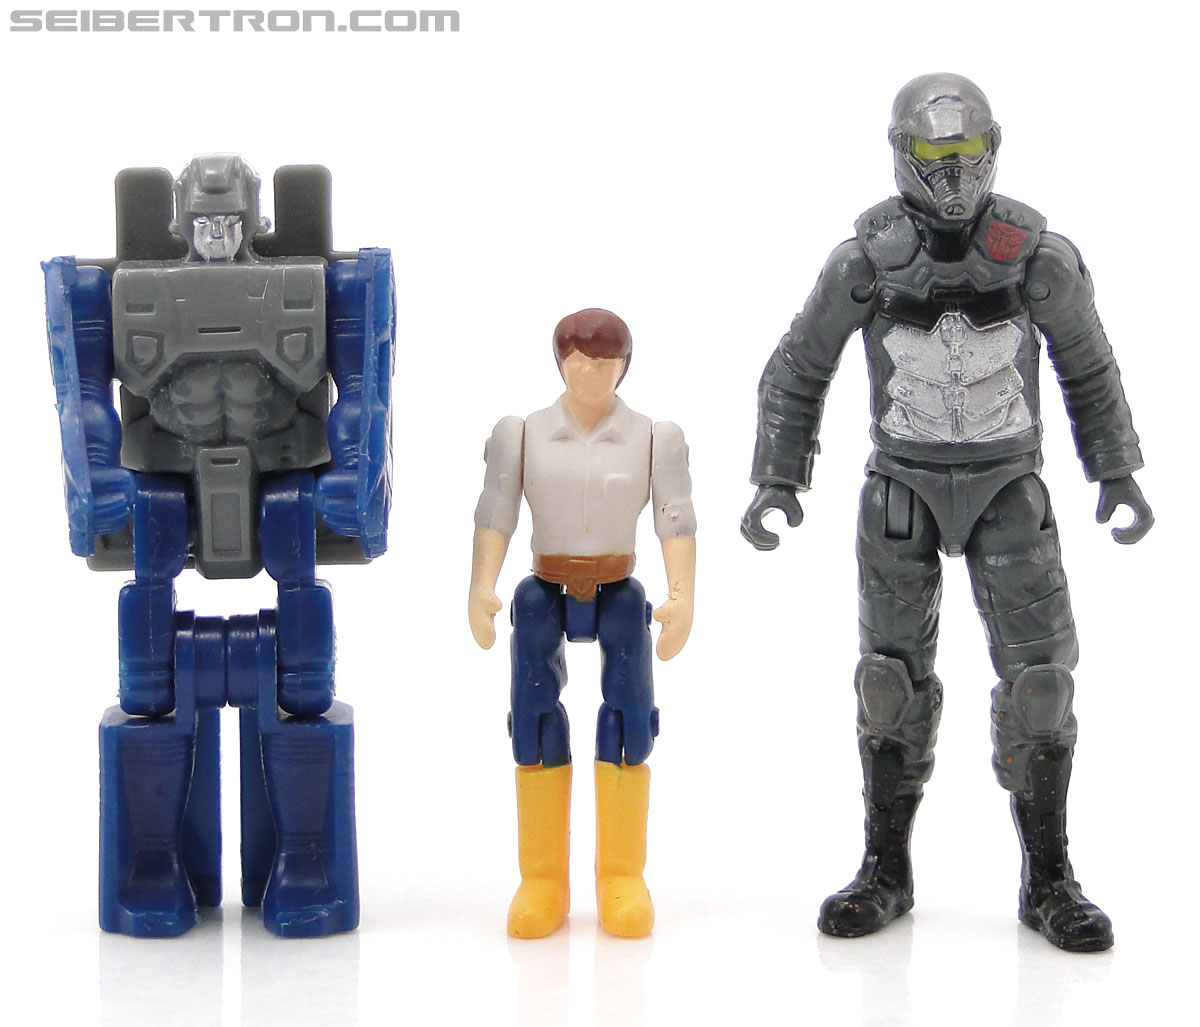 Transformers Dark of the Moon Spike Witwicky (Image #70 of 70)